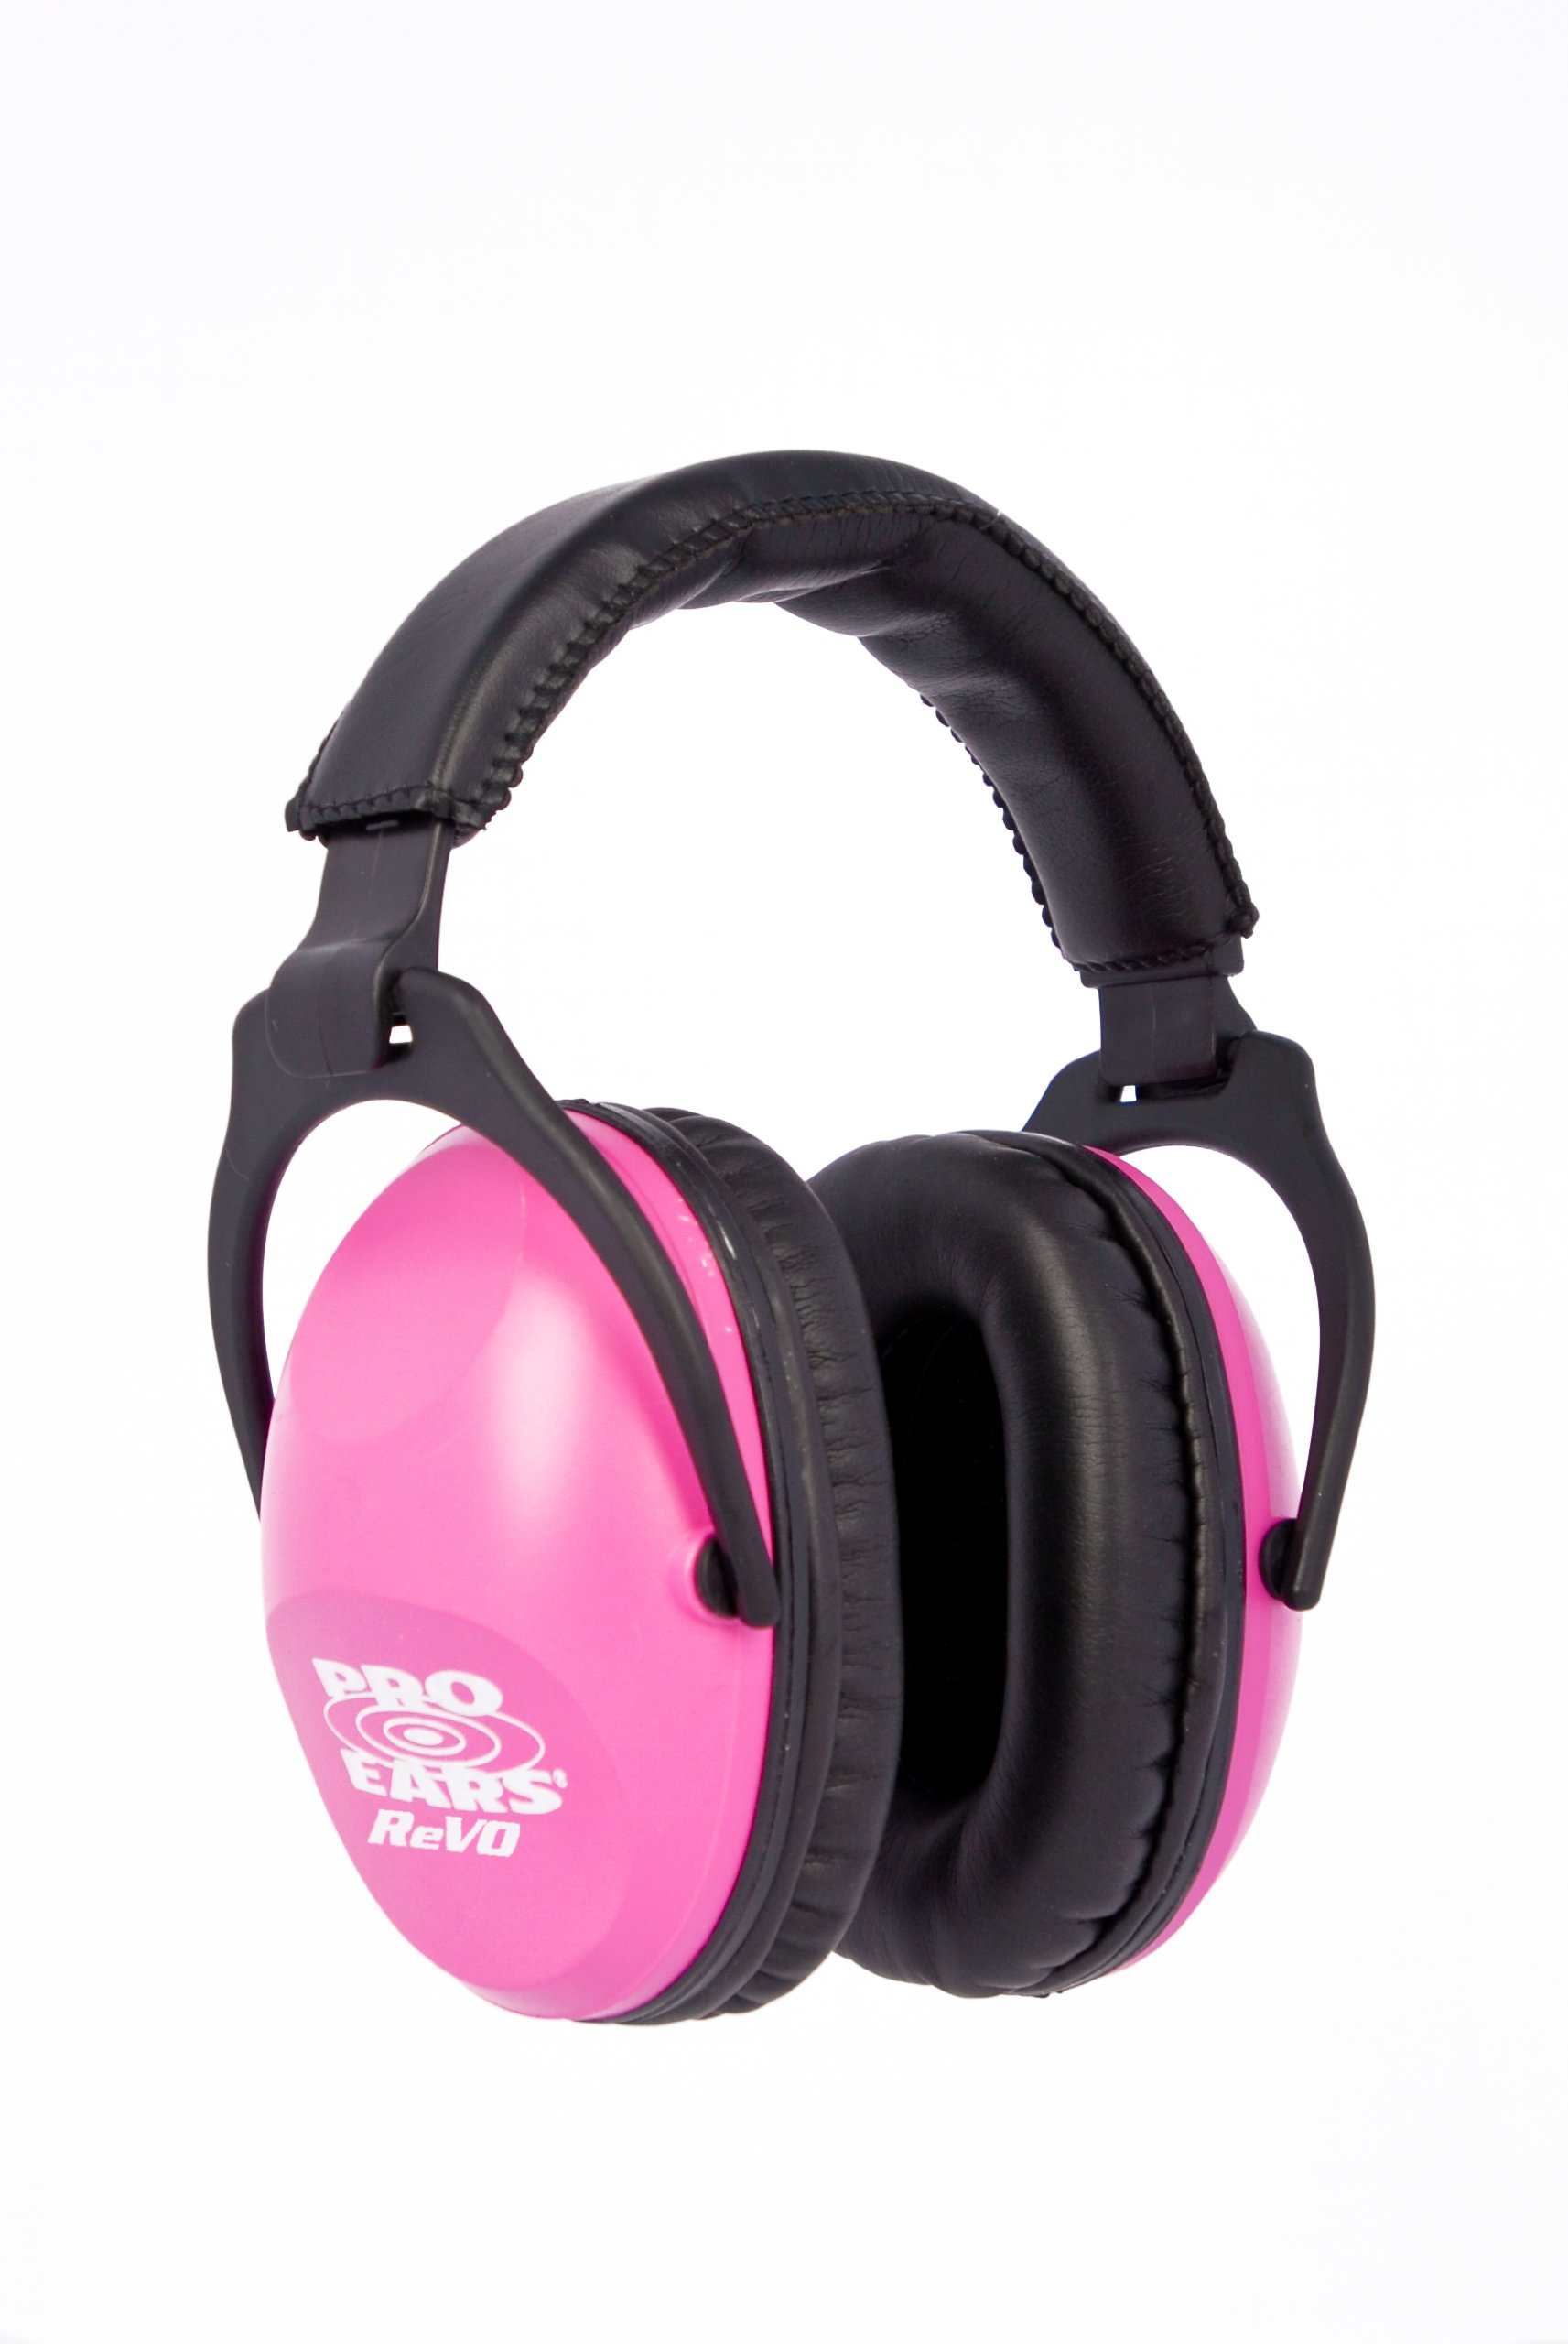 Pro Ears - ReVO - Hearing Protection - NRR 25 - Youth and Women Ear Muffs - Neon Pink by Pro Ears (Image #1)